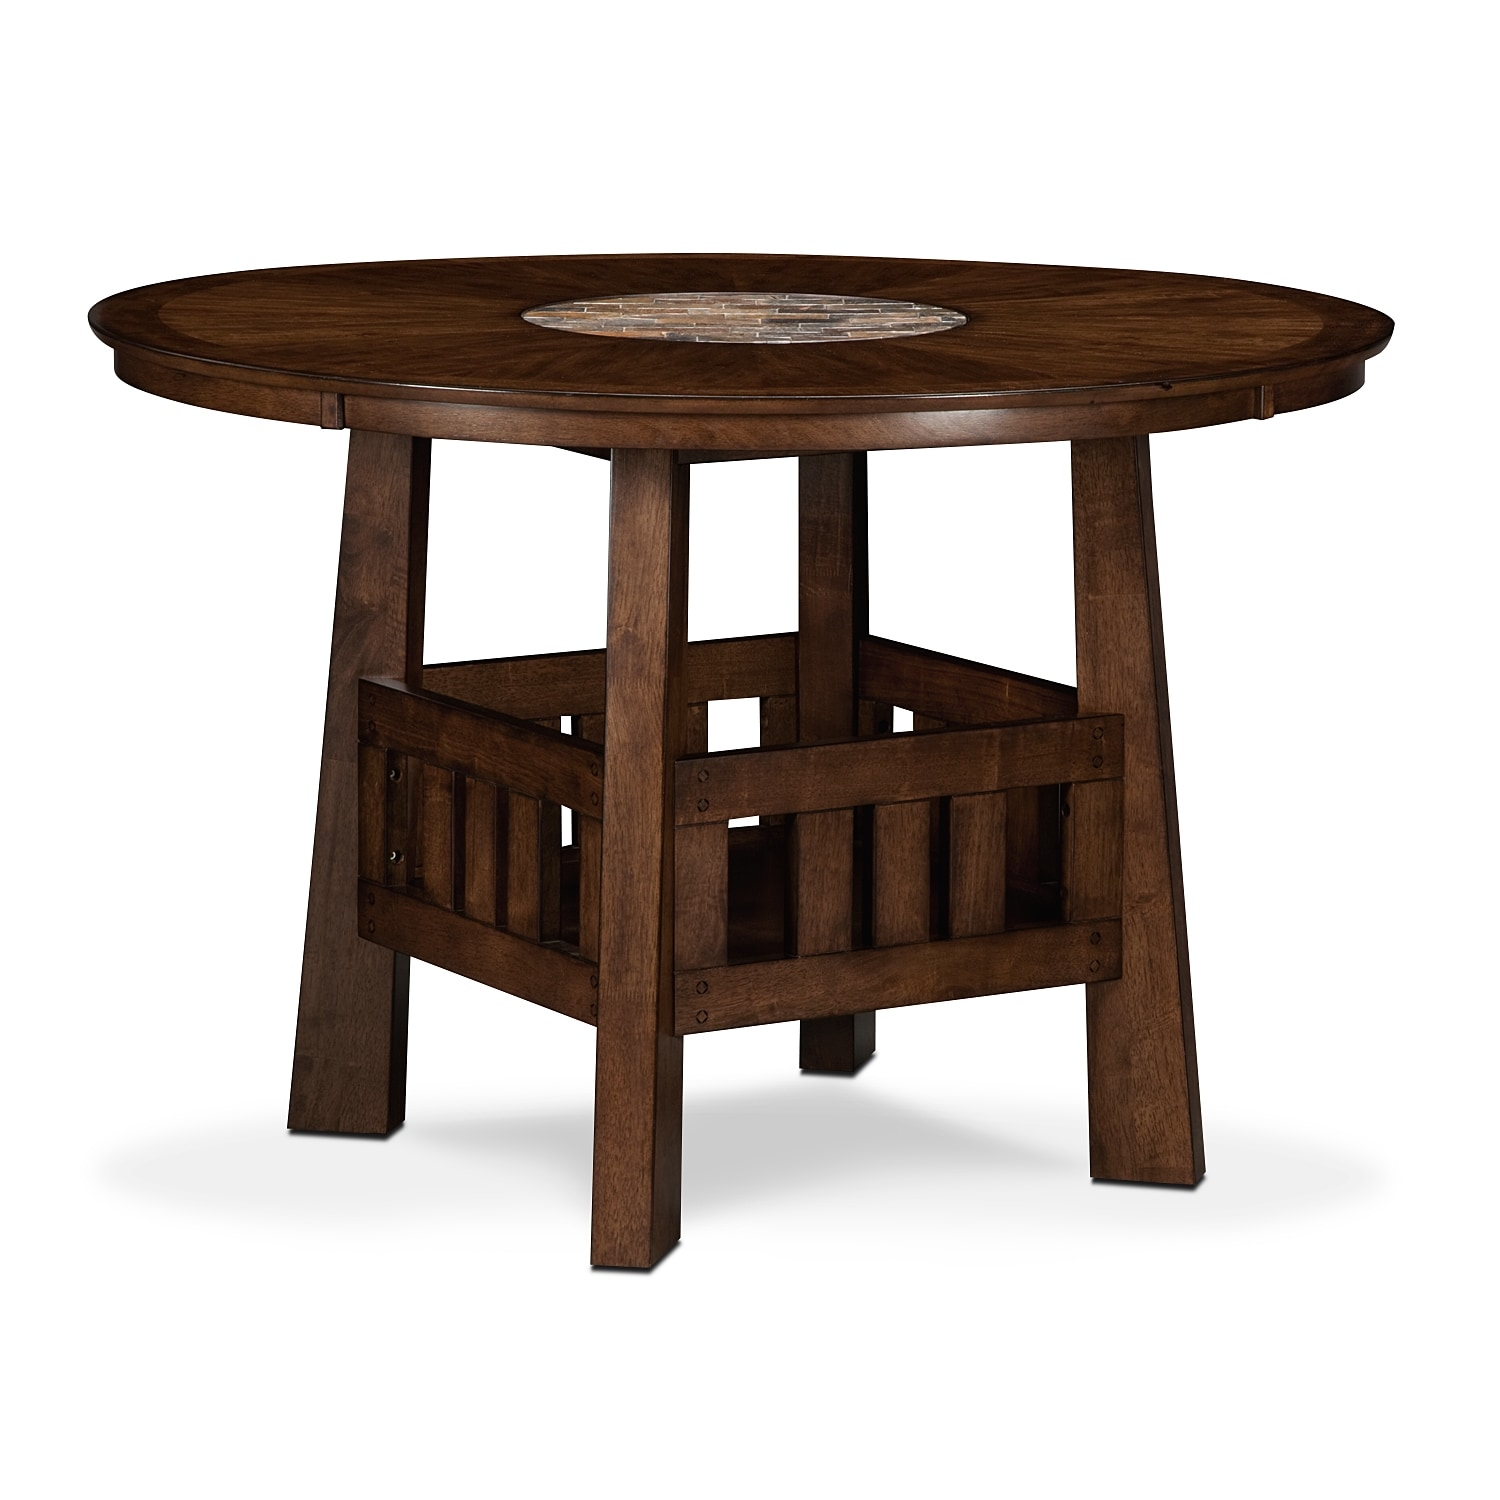 Dining Room Furniture - Harbor Pointe Counter-Height Table - Oak - Harbor Pointe Counter-Height Table - Oak American Signature